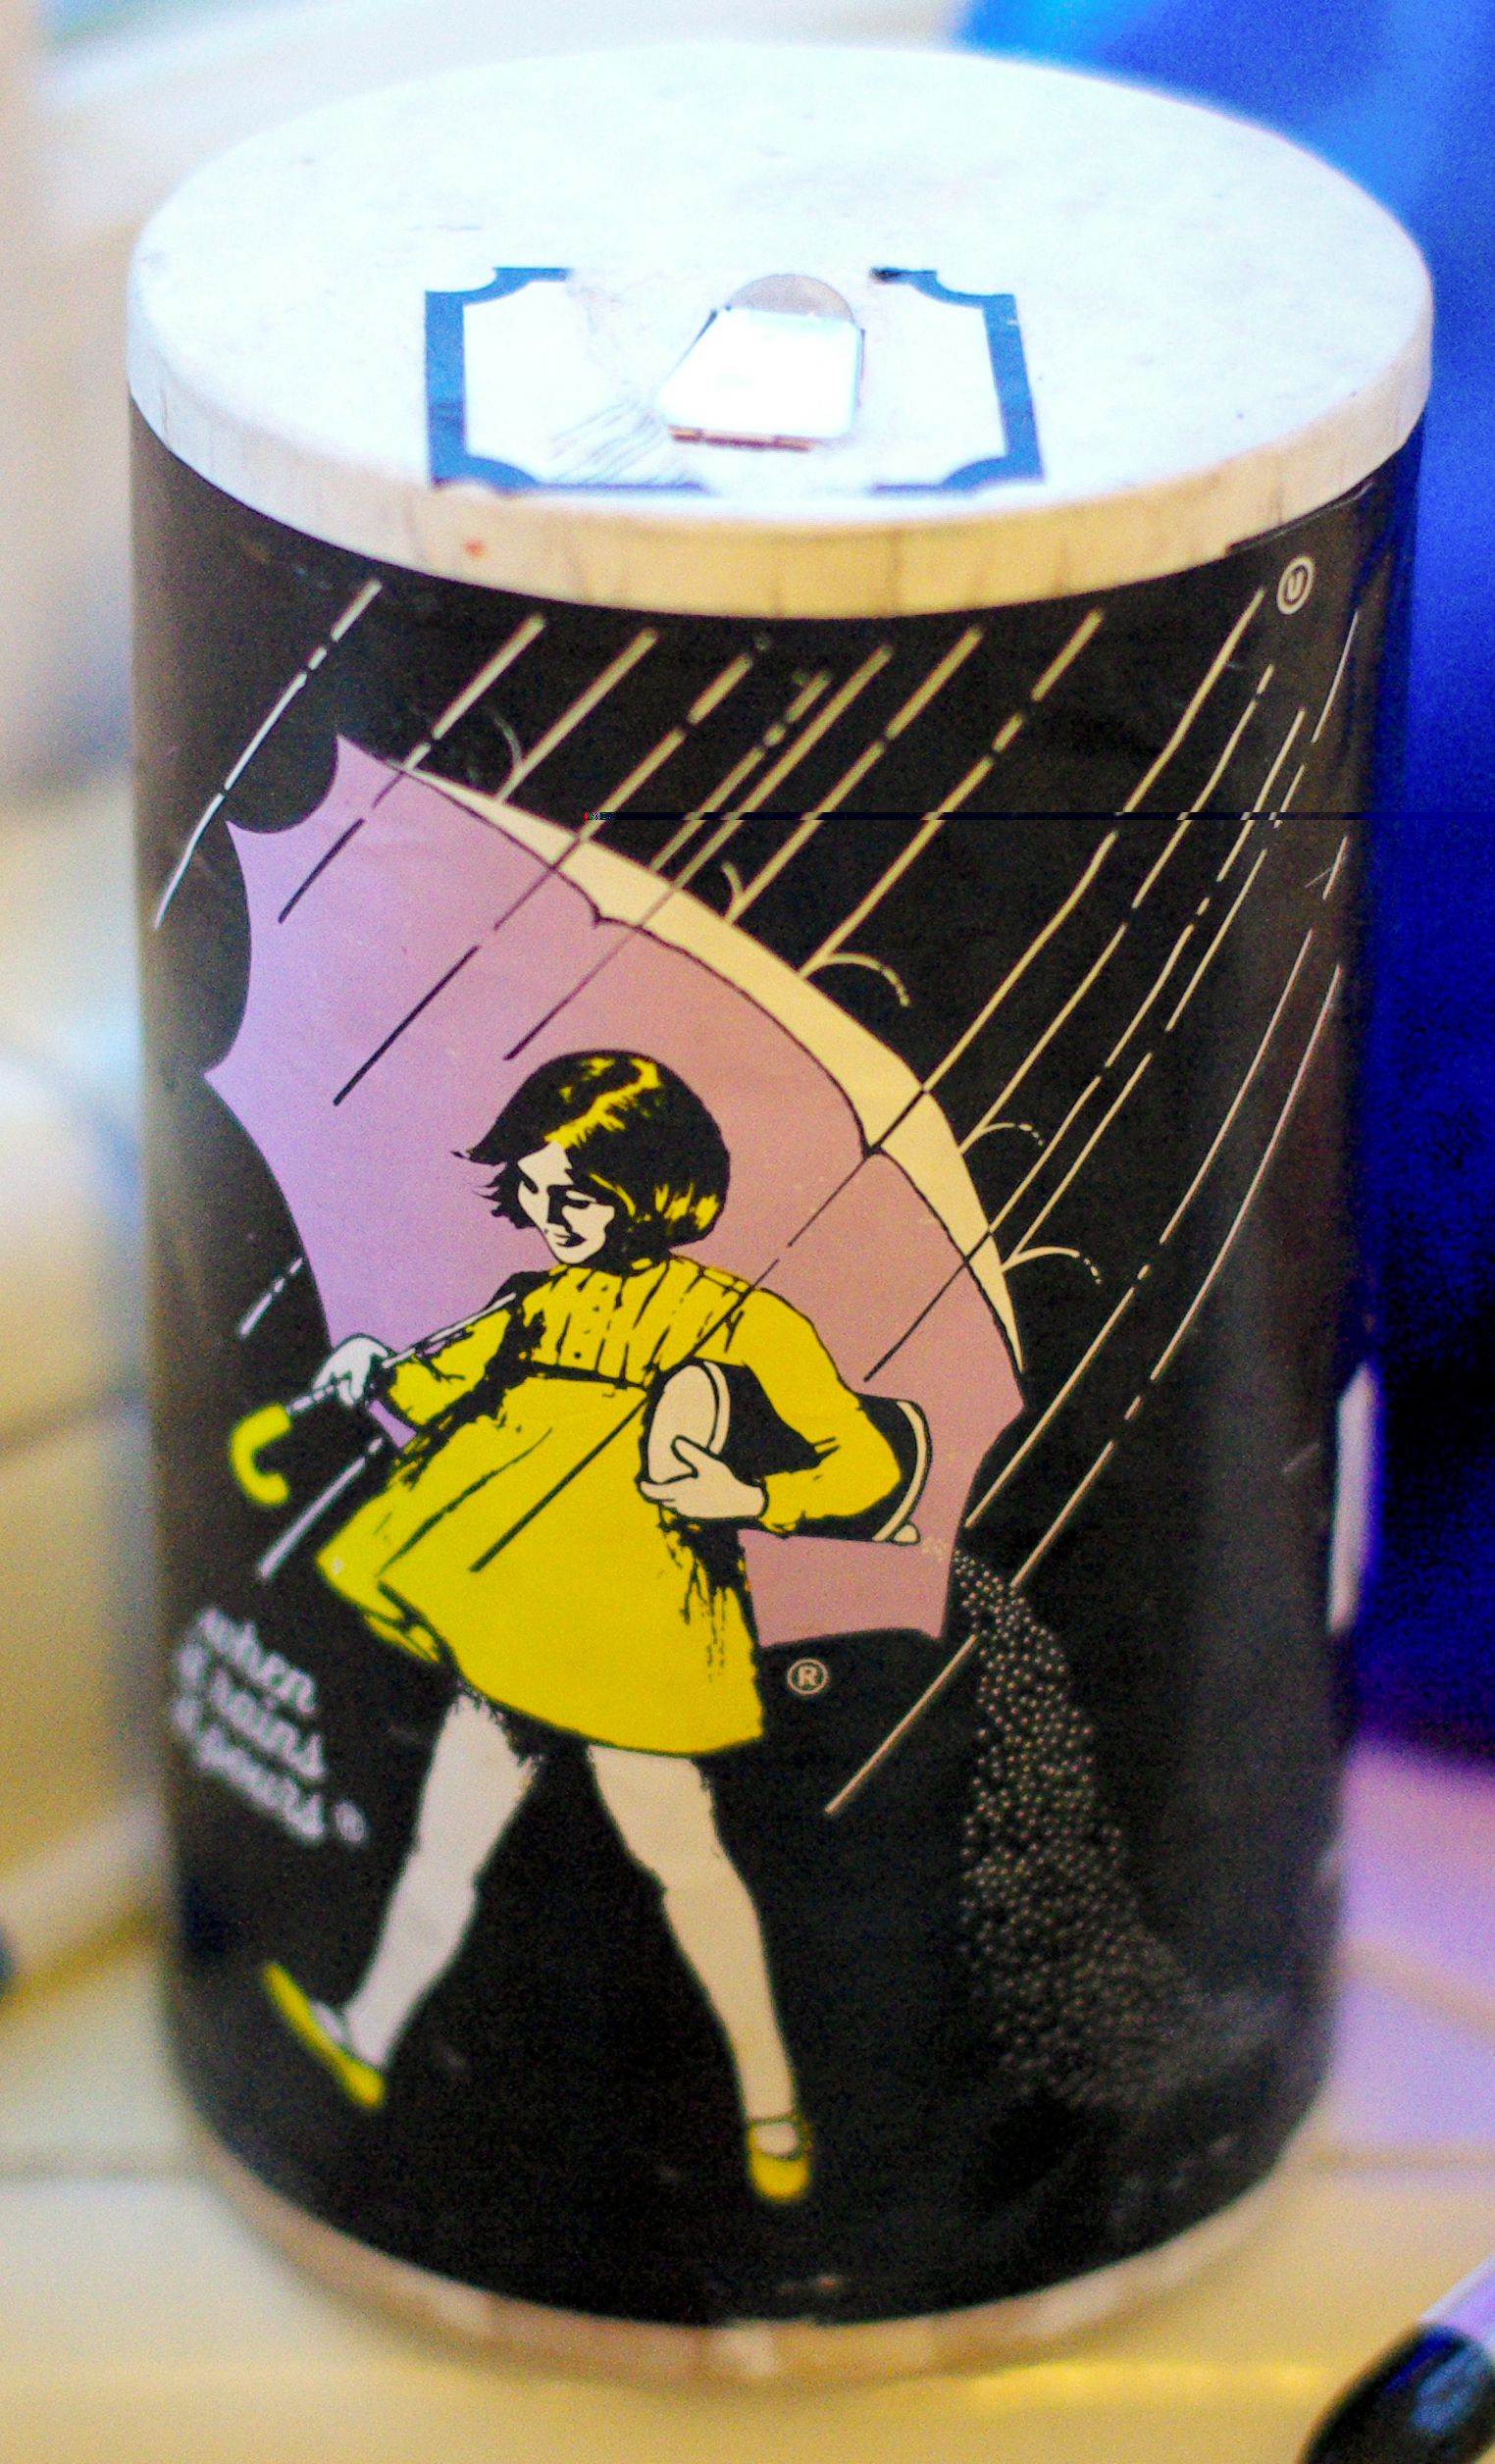 Morton Salt box